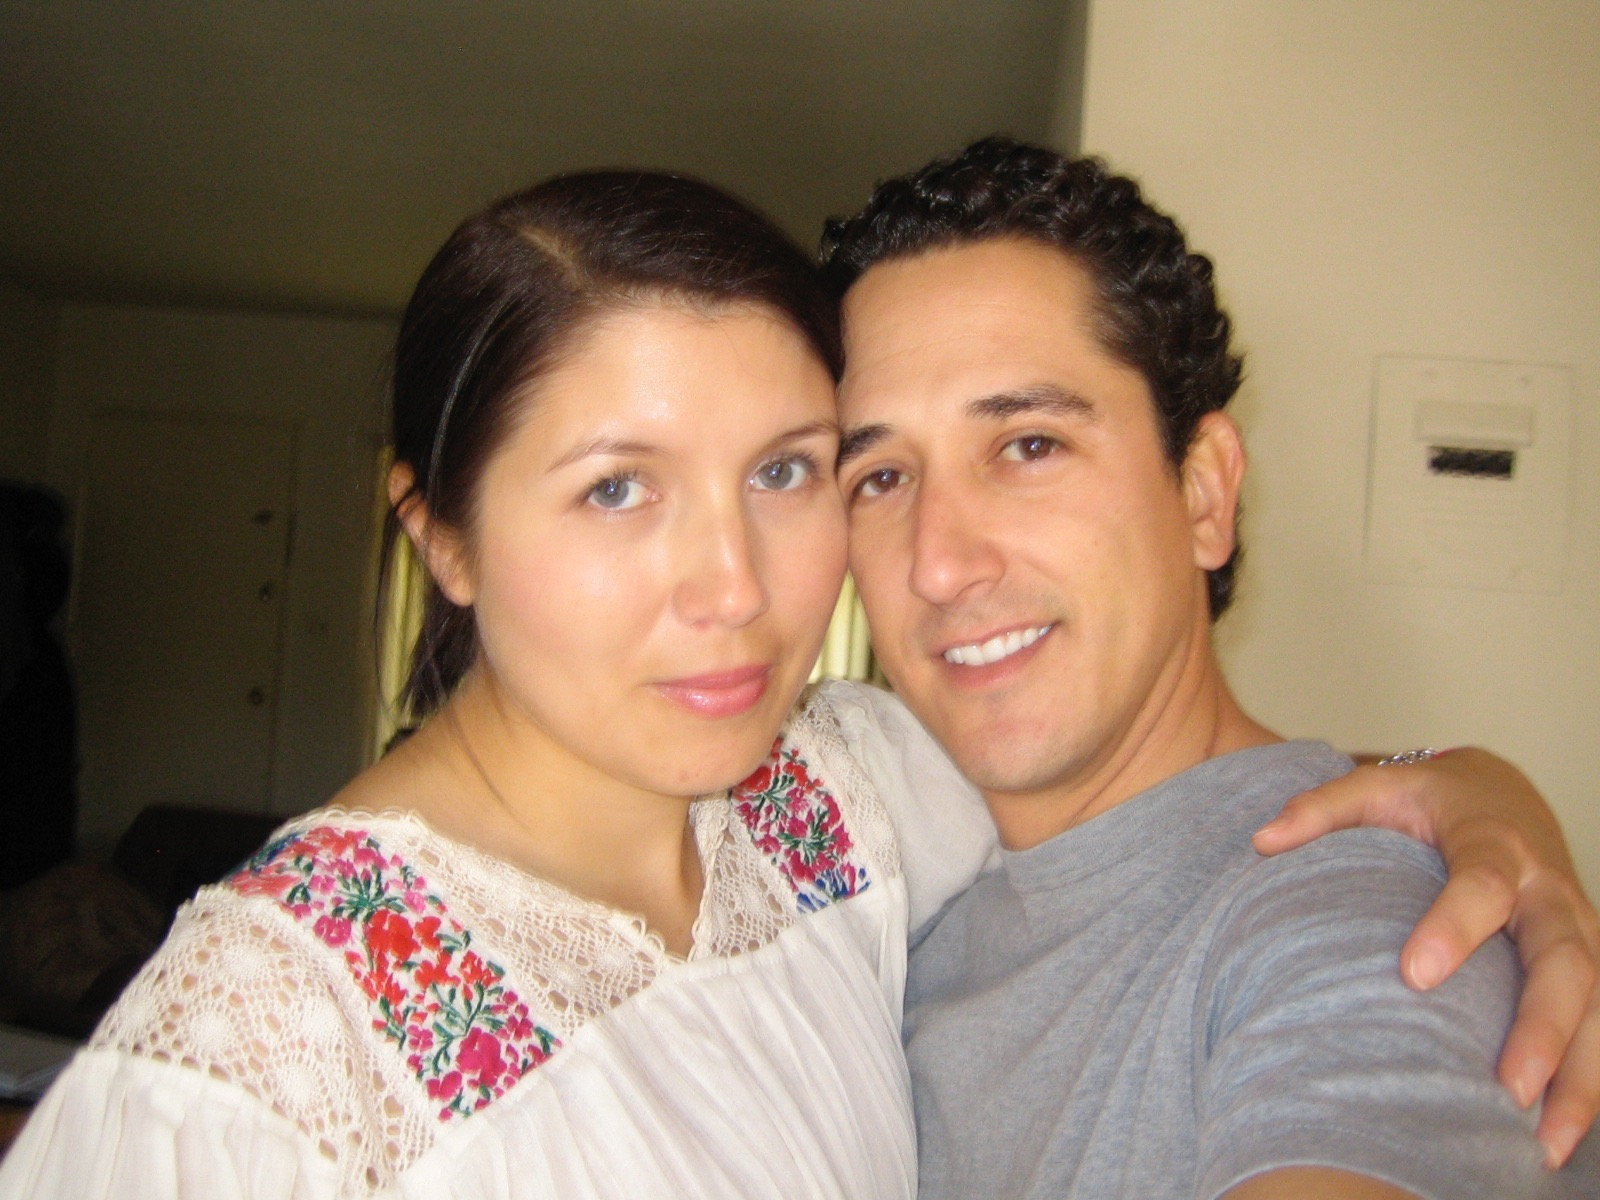 The first picture of me and Kevin in November 2006, a month after we started dating.